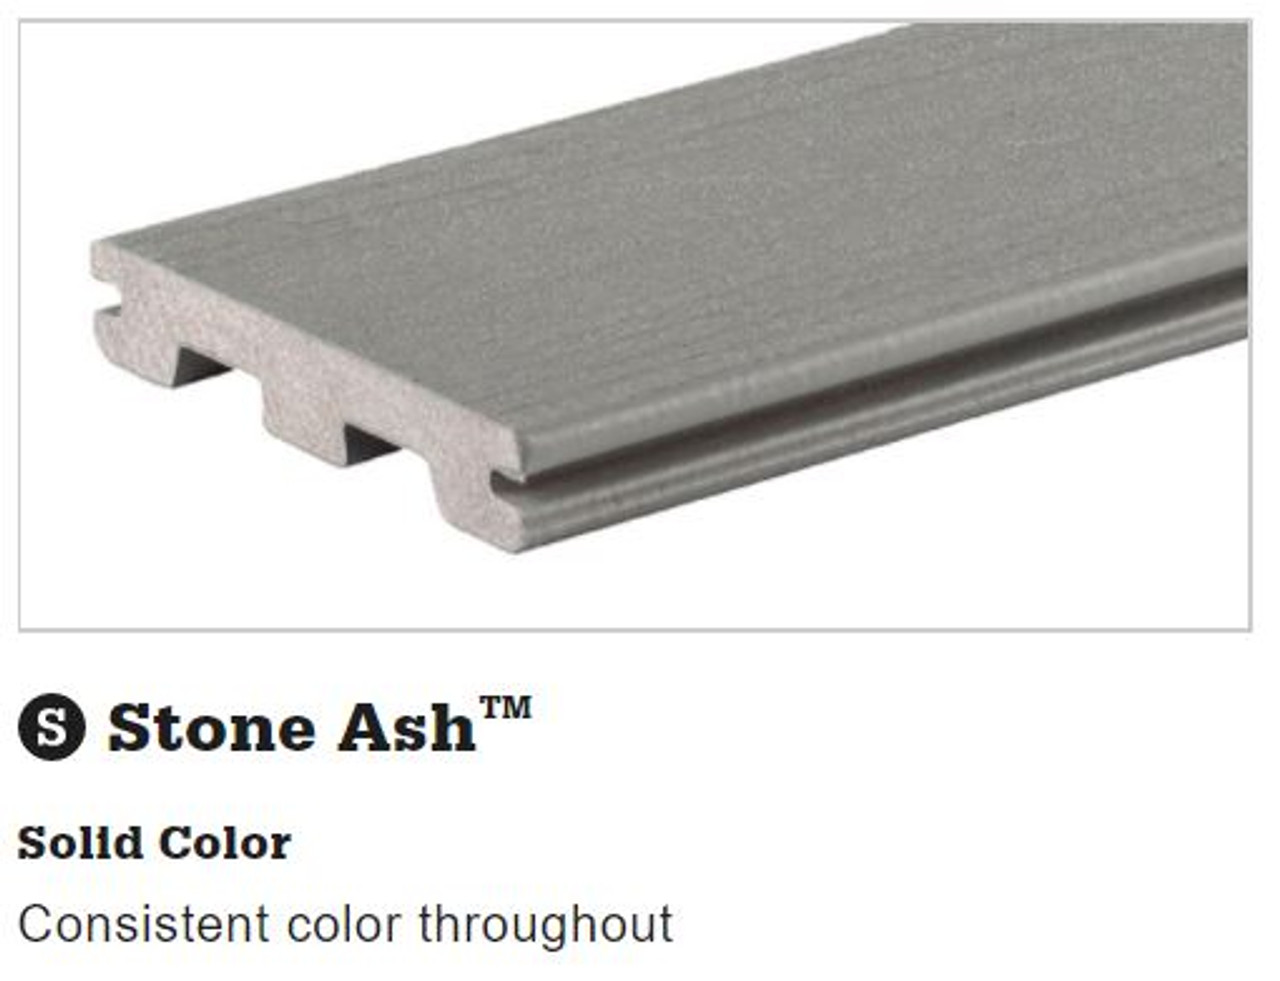 TimberTech Terrain Stone Ash Grooved Decking